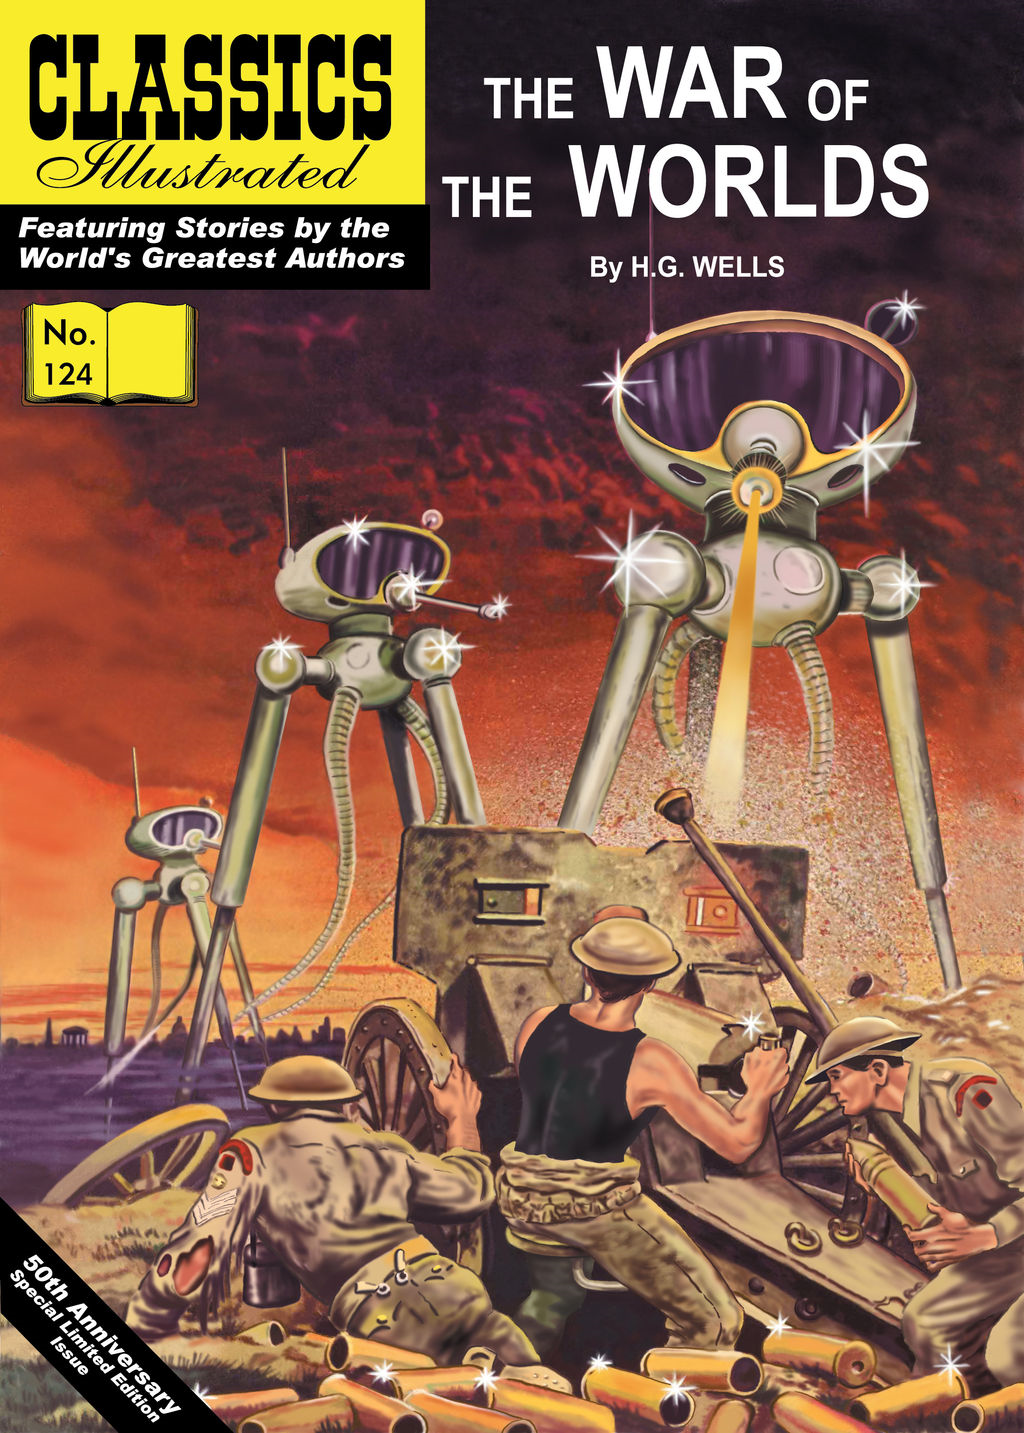 the humankind struggles in h g wells war of the worlds How is humanity presented in war of the presented by hg wells in the war of the worlds his novel the war of the worlds to imply that man has become.